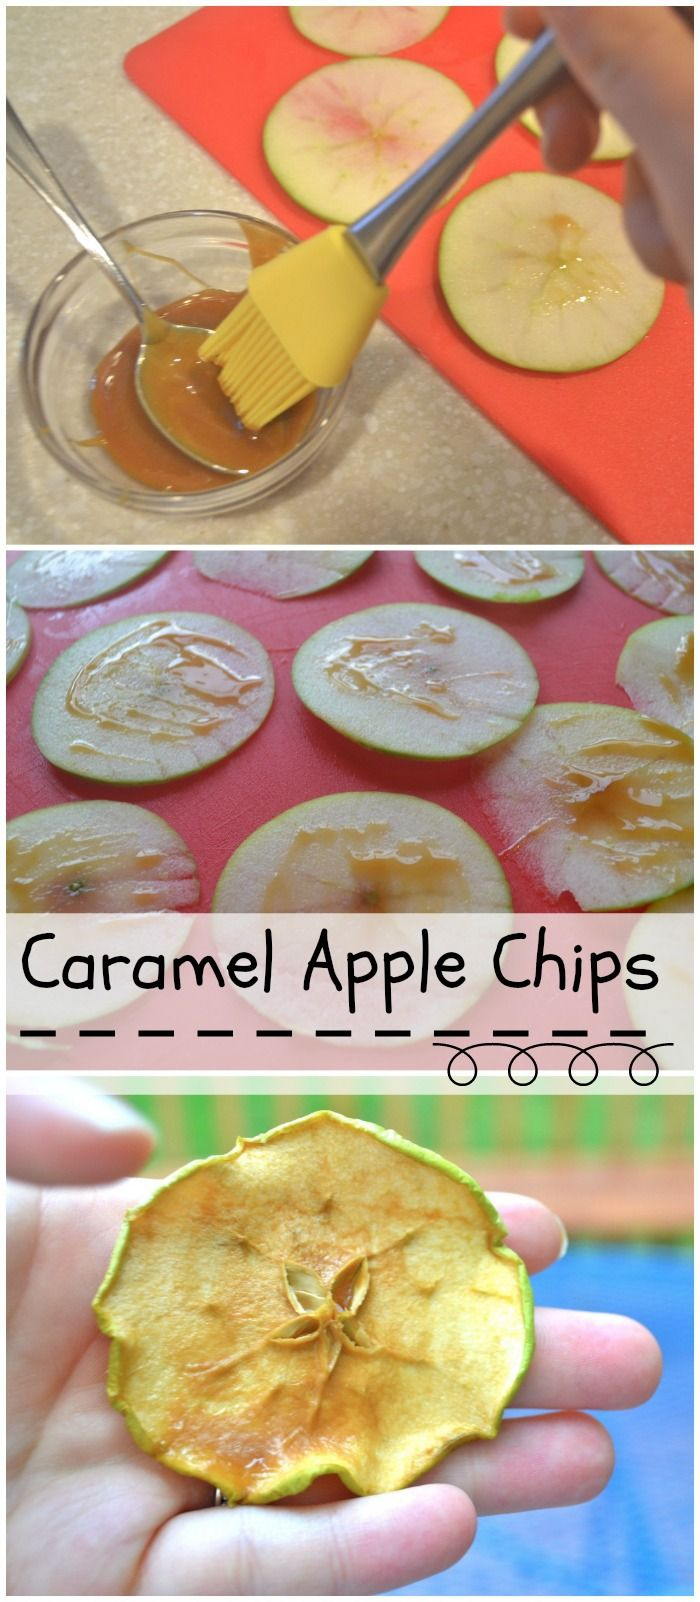 Caramel Green Apple Chips